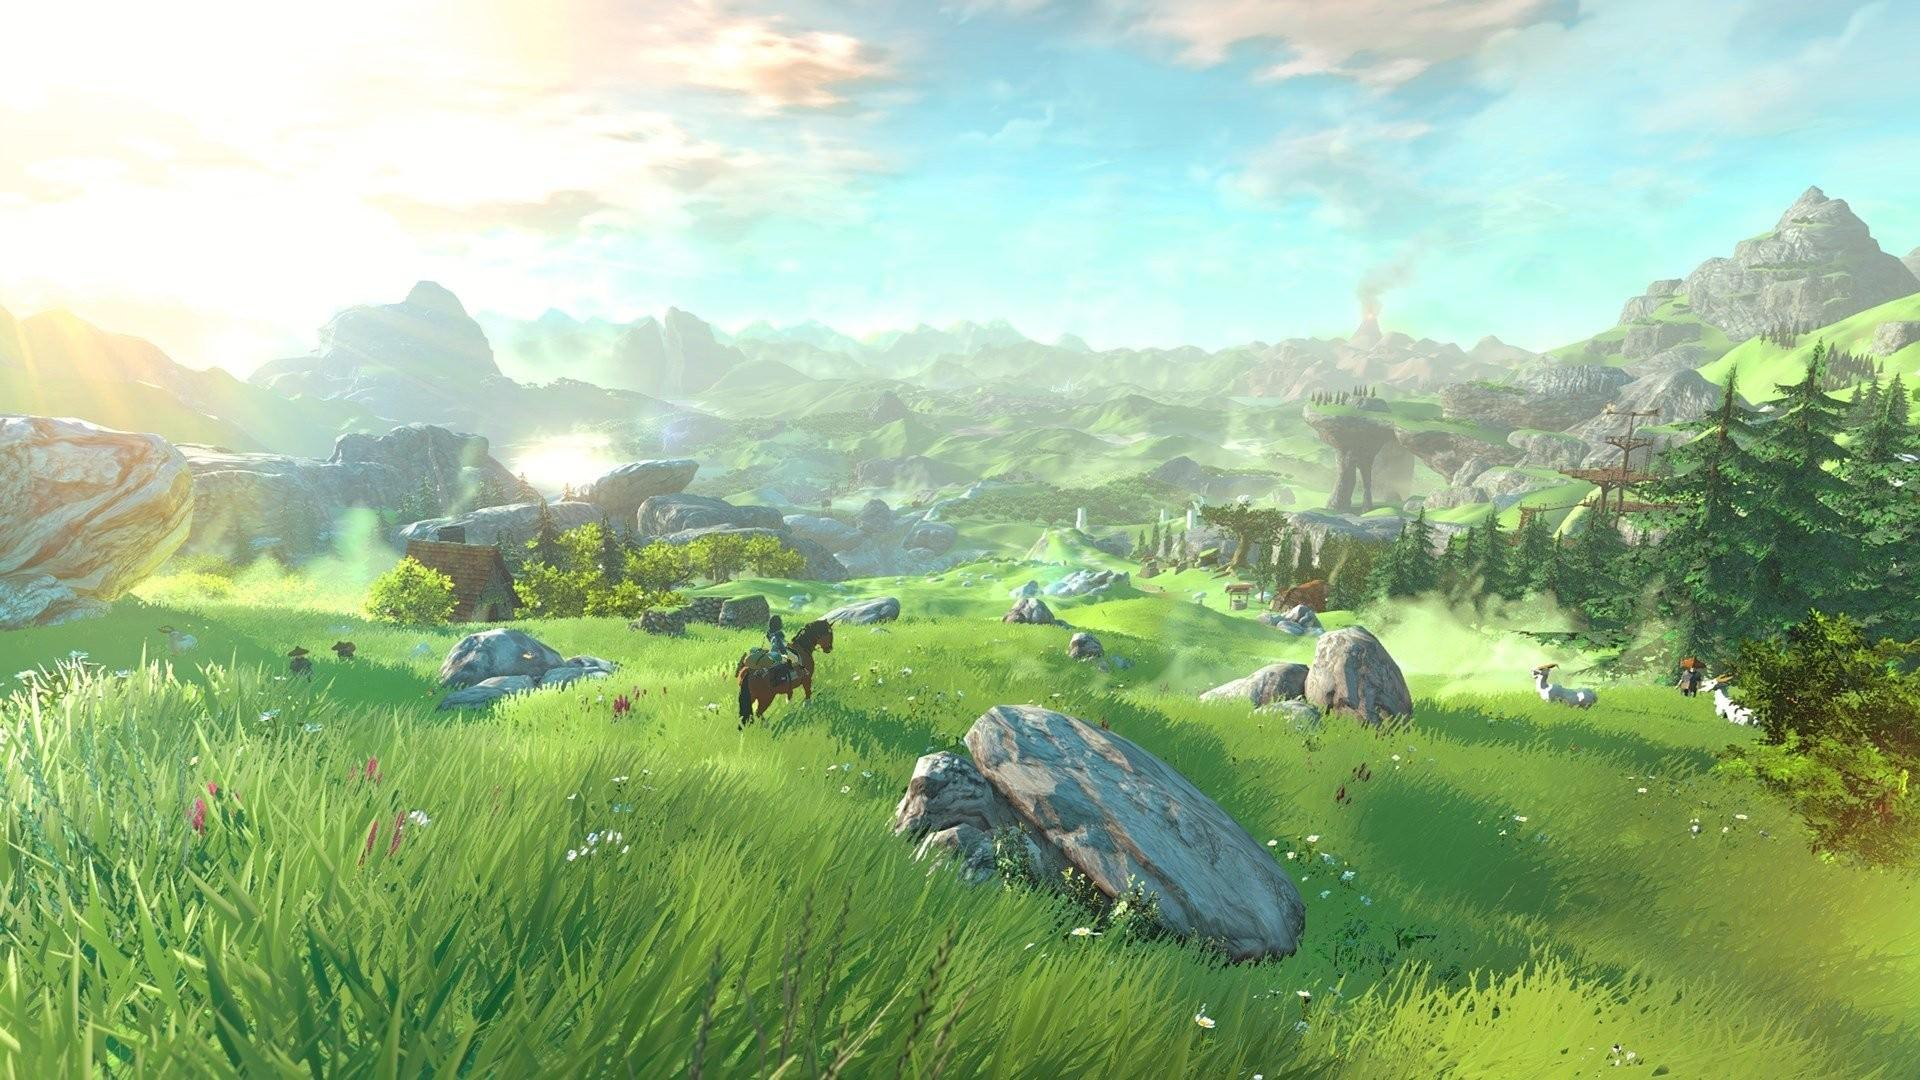 Legend of Zelda Breath of the Wild wallpapers ·① Download free HD